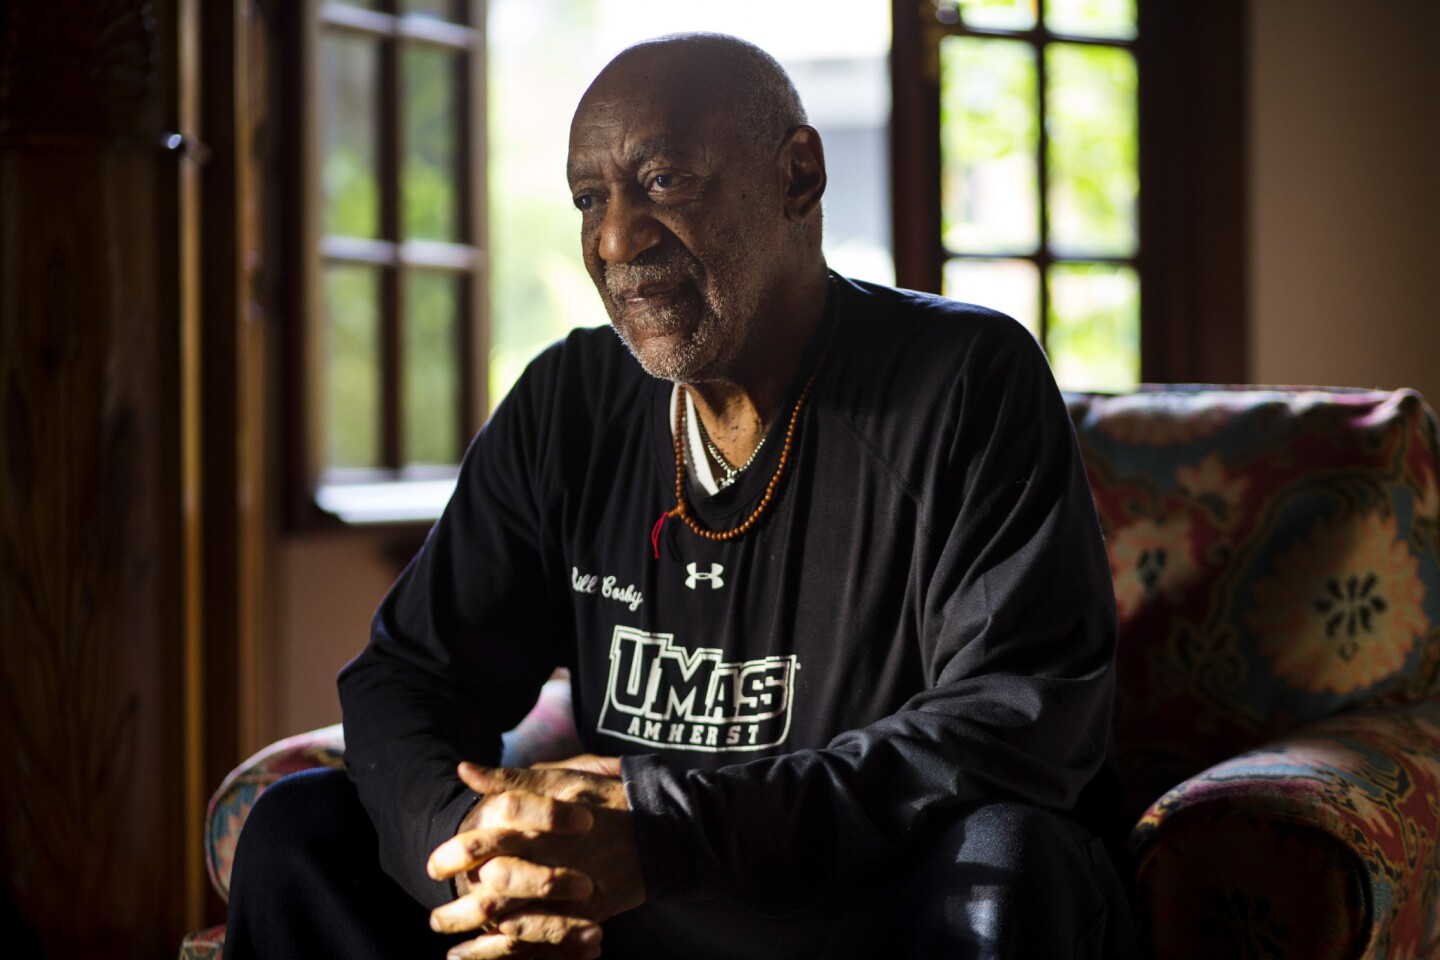 """Once called """"America's Dad,"""" Bill Cosby built a career around his Everyman image; now he's facing allegations of sexual assault. Here are some of his career and life moments."""